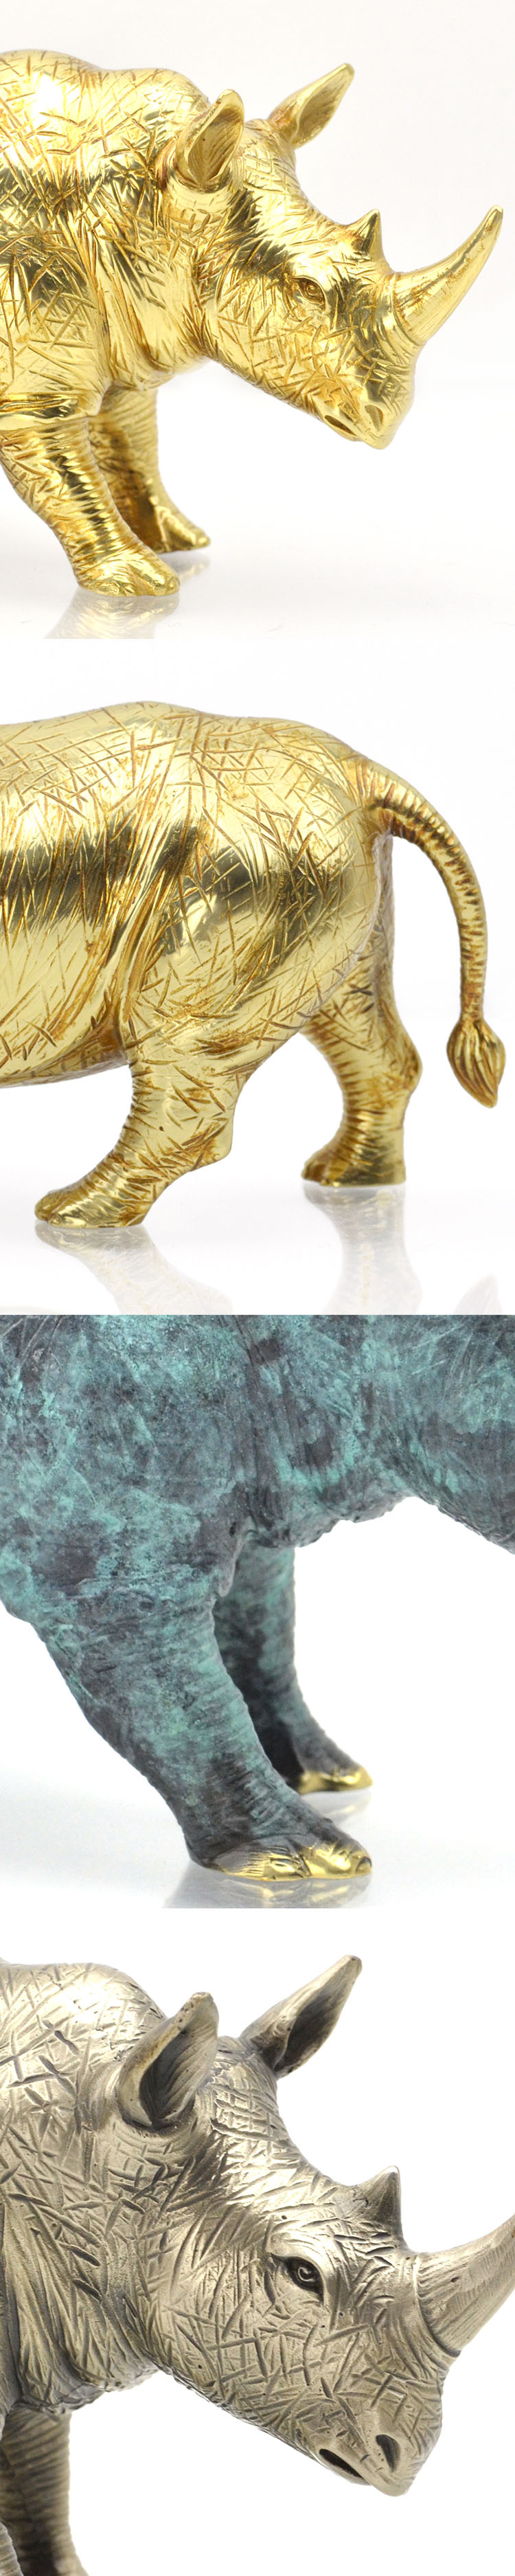 Luxury House Living Room Table Accessories 3D Pieces Animal Metal Art Gifts Crafts Items Home Decoration